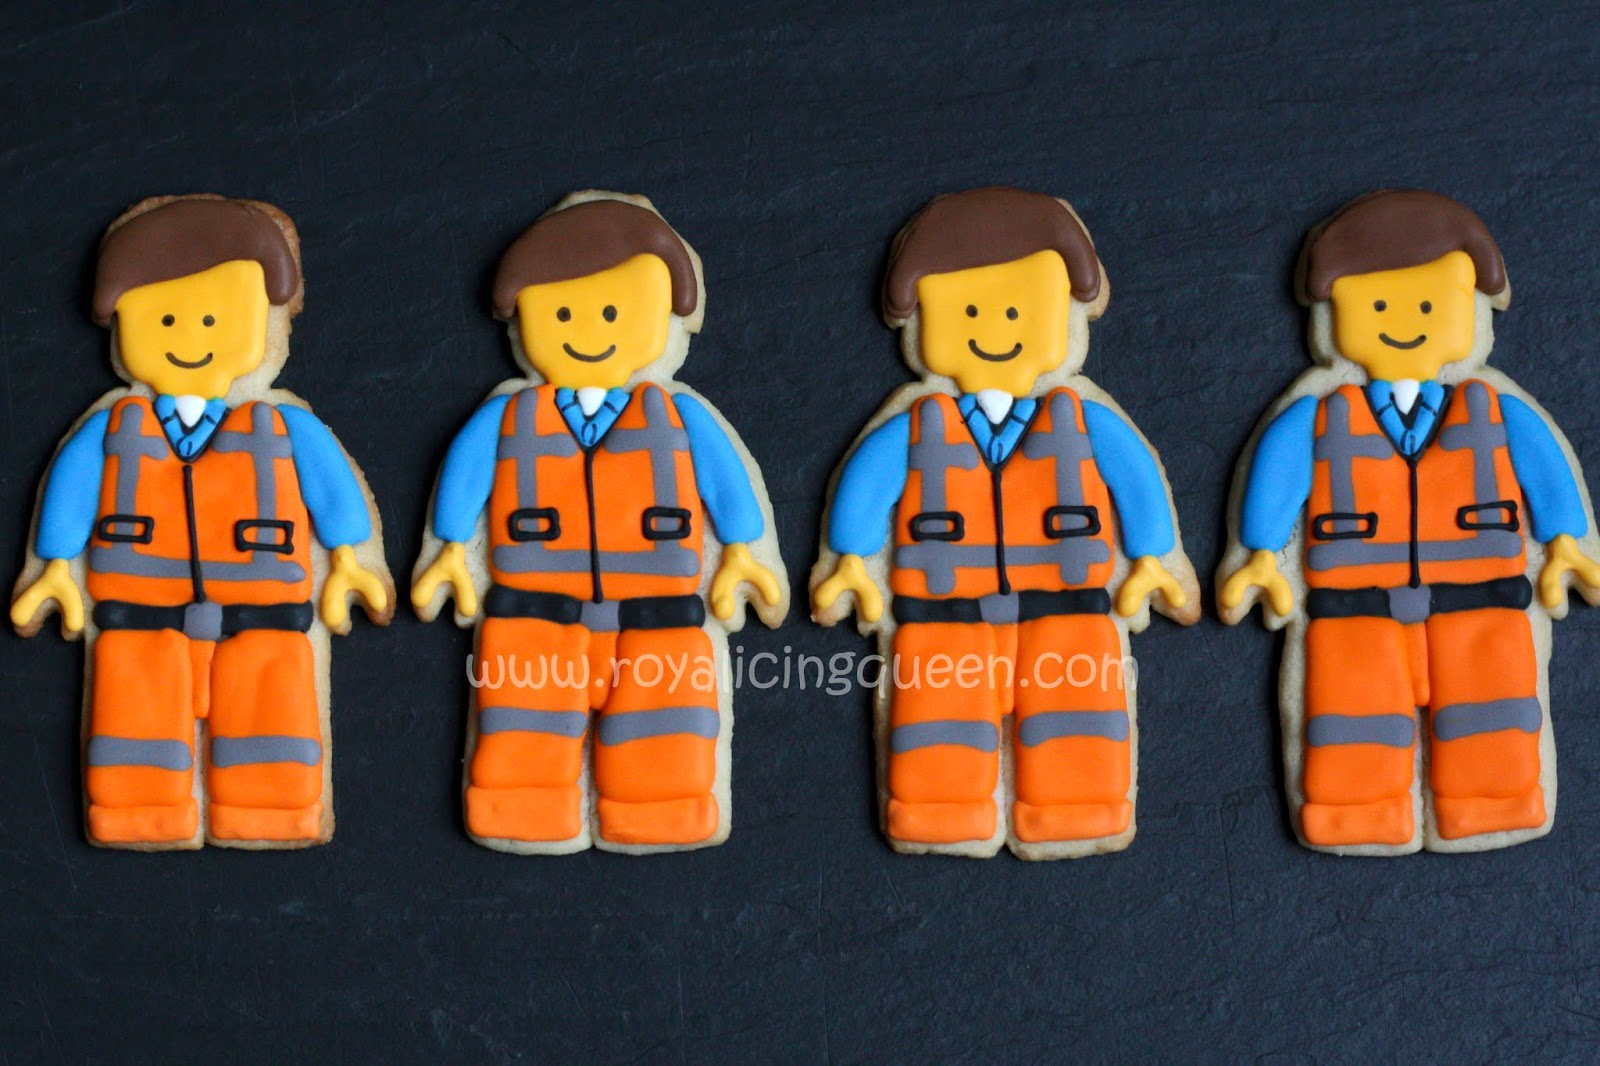 The Royal Icing Queen Lego Movie Cookies